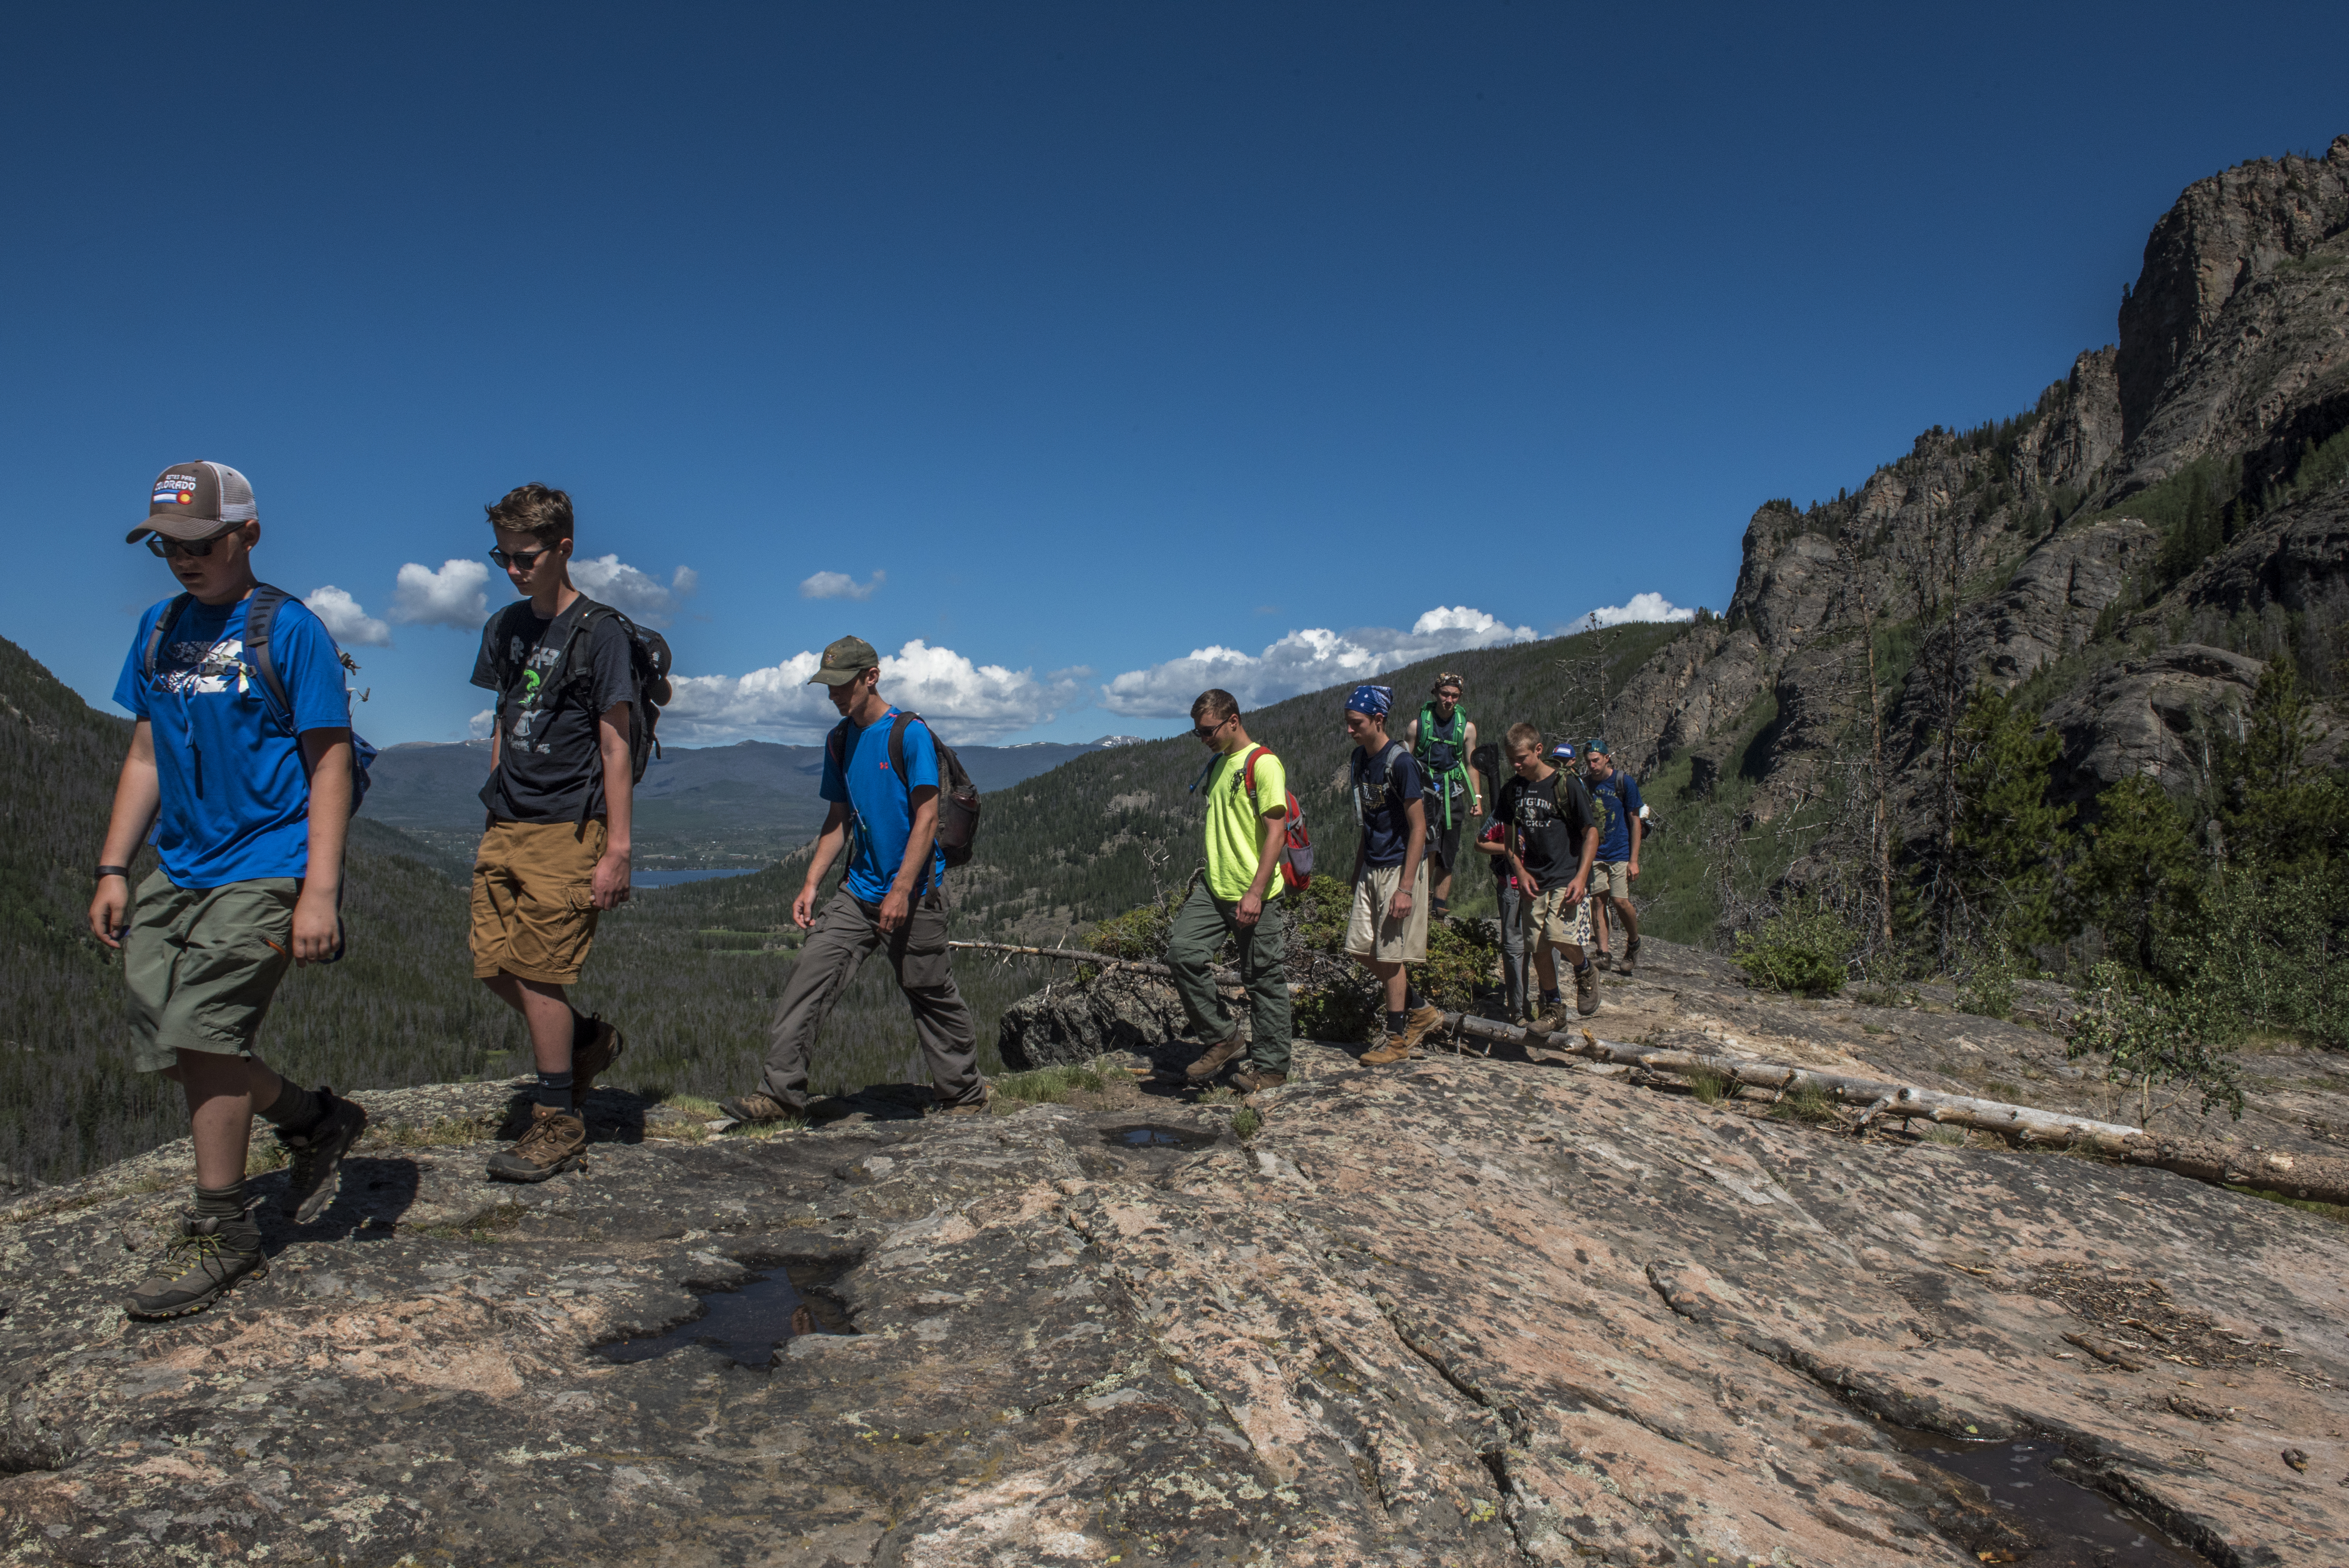 Scouts from PA hike on the East Inlet trail in Rocky Mountain National Park, during a two week adventure trip to Colorado